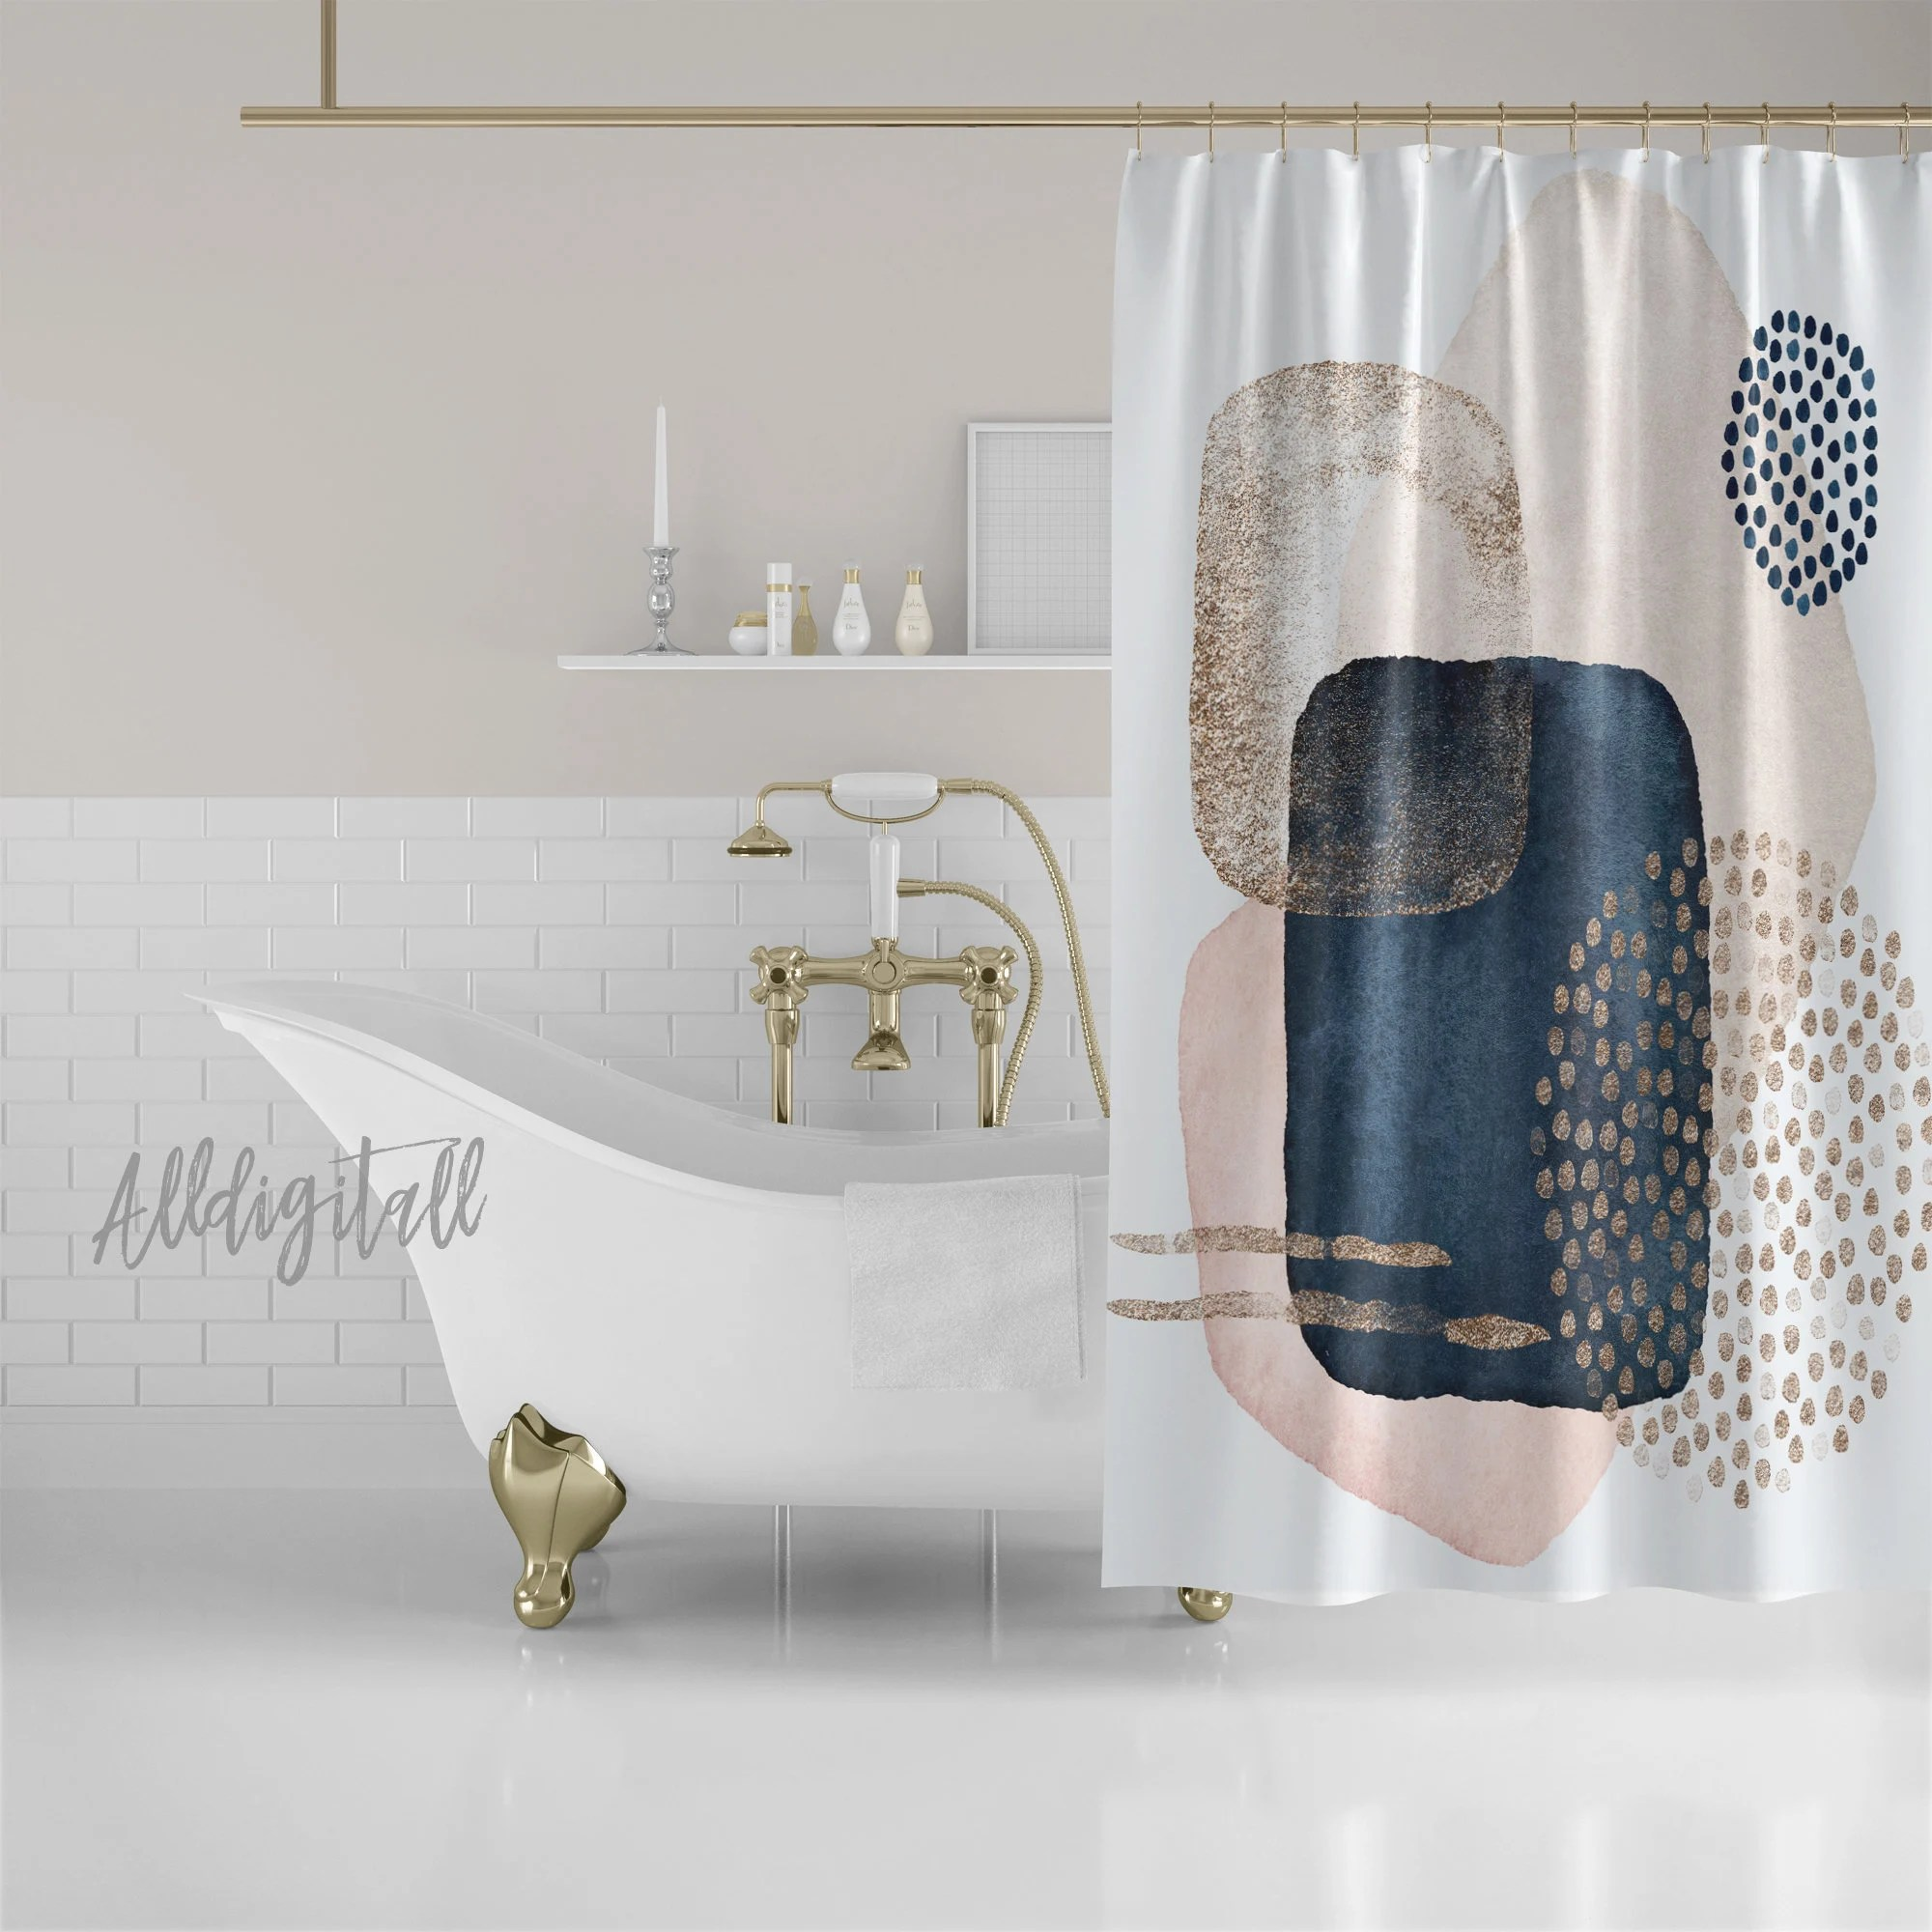 watercolor shower curtain abstract bathroom decor pink and navy bathroom mat contemporary shower curtains modern bathroom decor modern